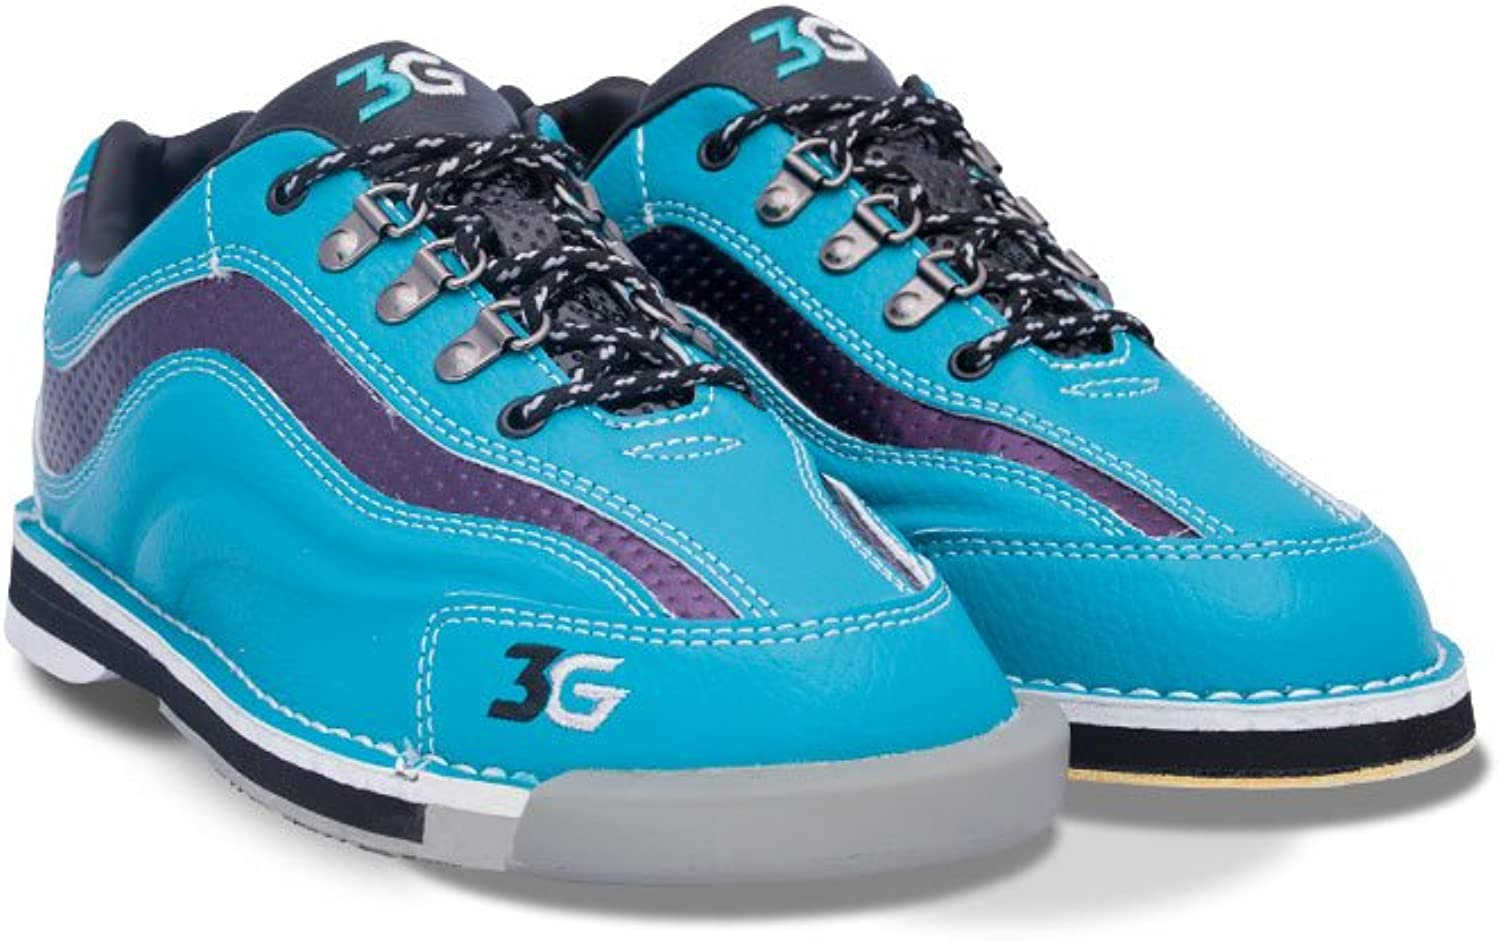 3G Ladies Sport Ultra Bowling skor Right Hand - Teal Teal Teal  lila  onlinebutik